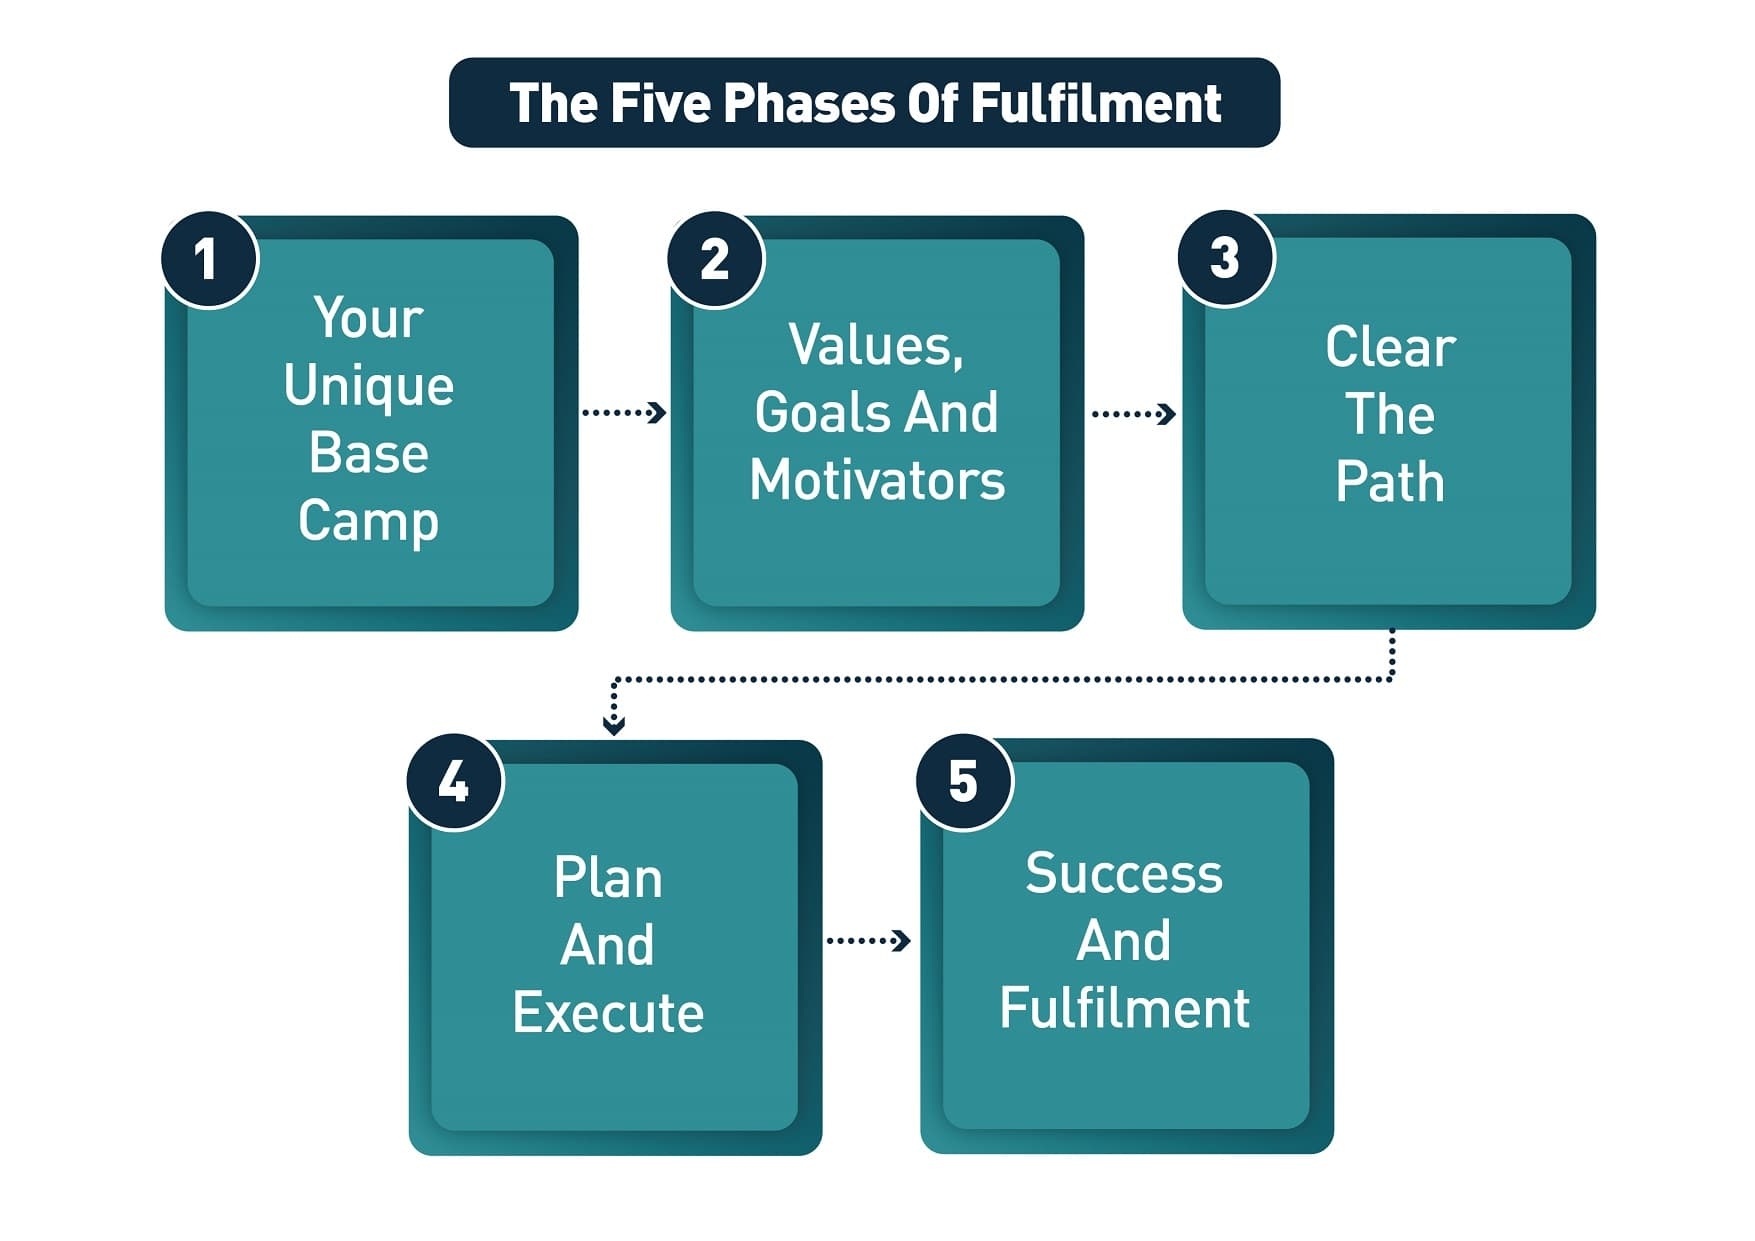 The five phases of fulfilment